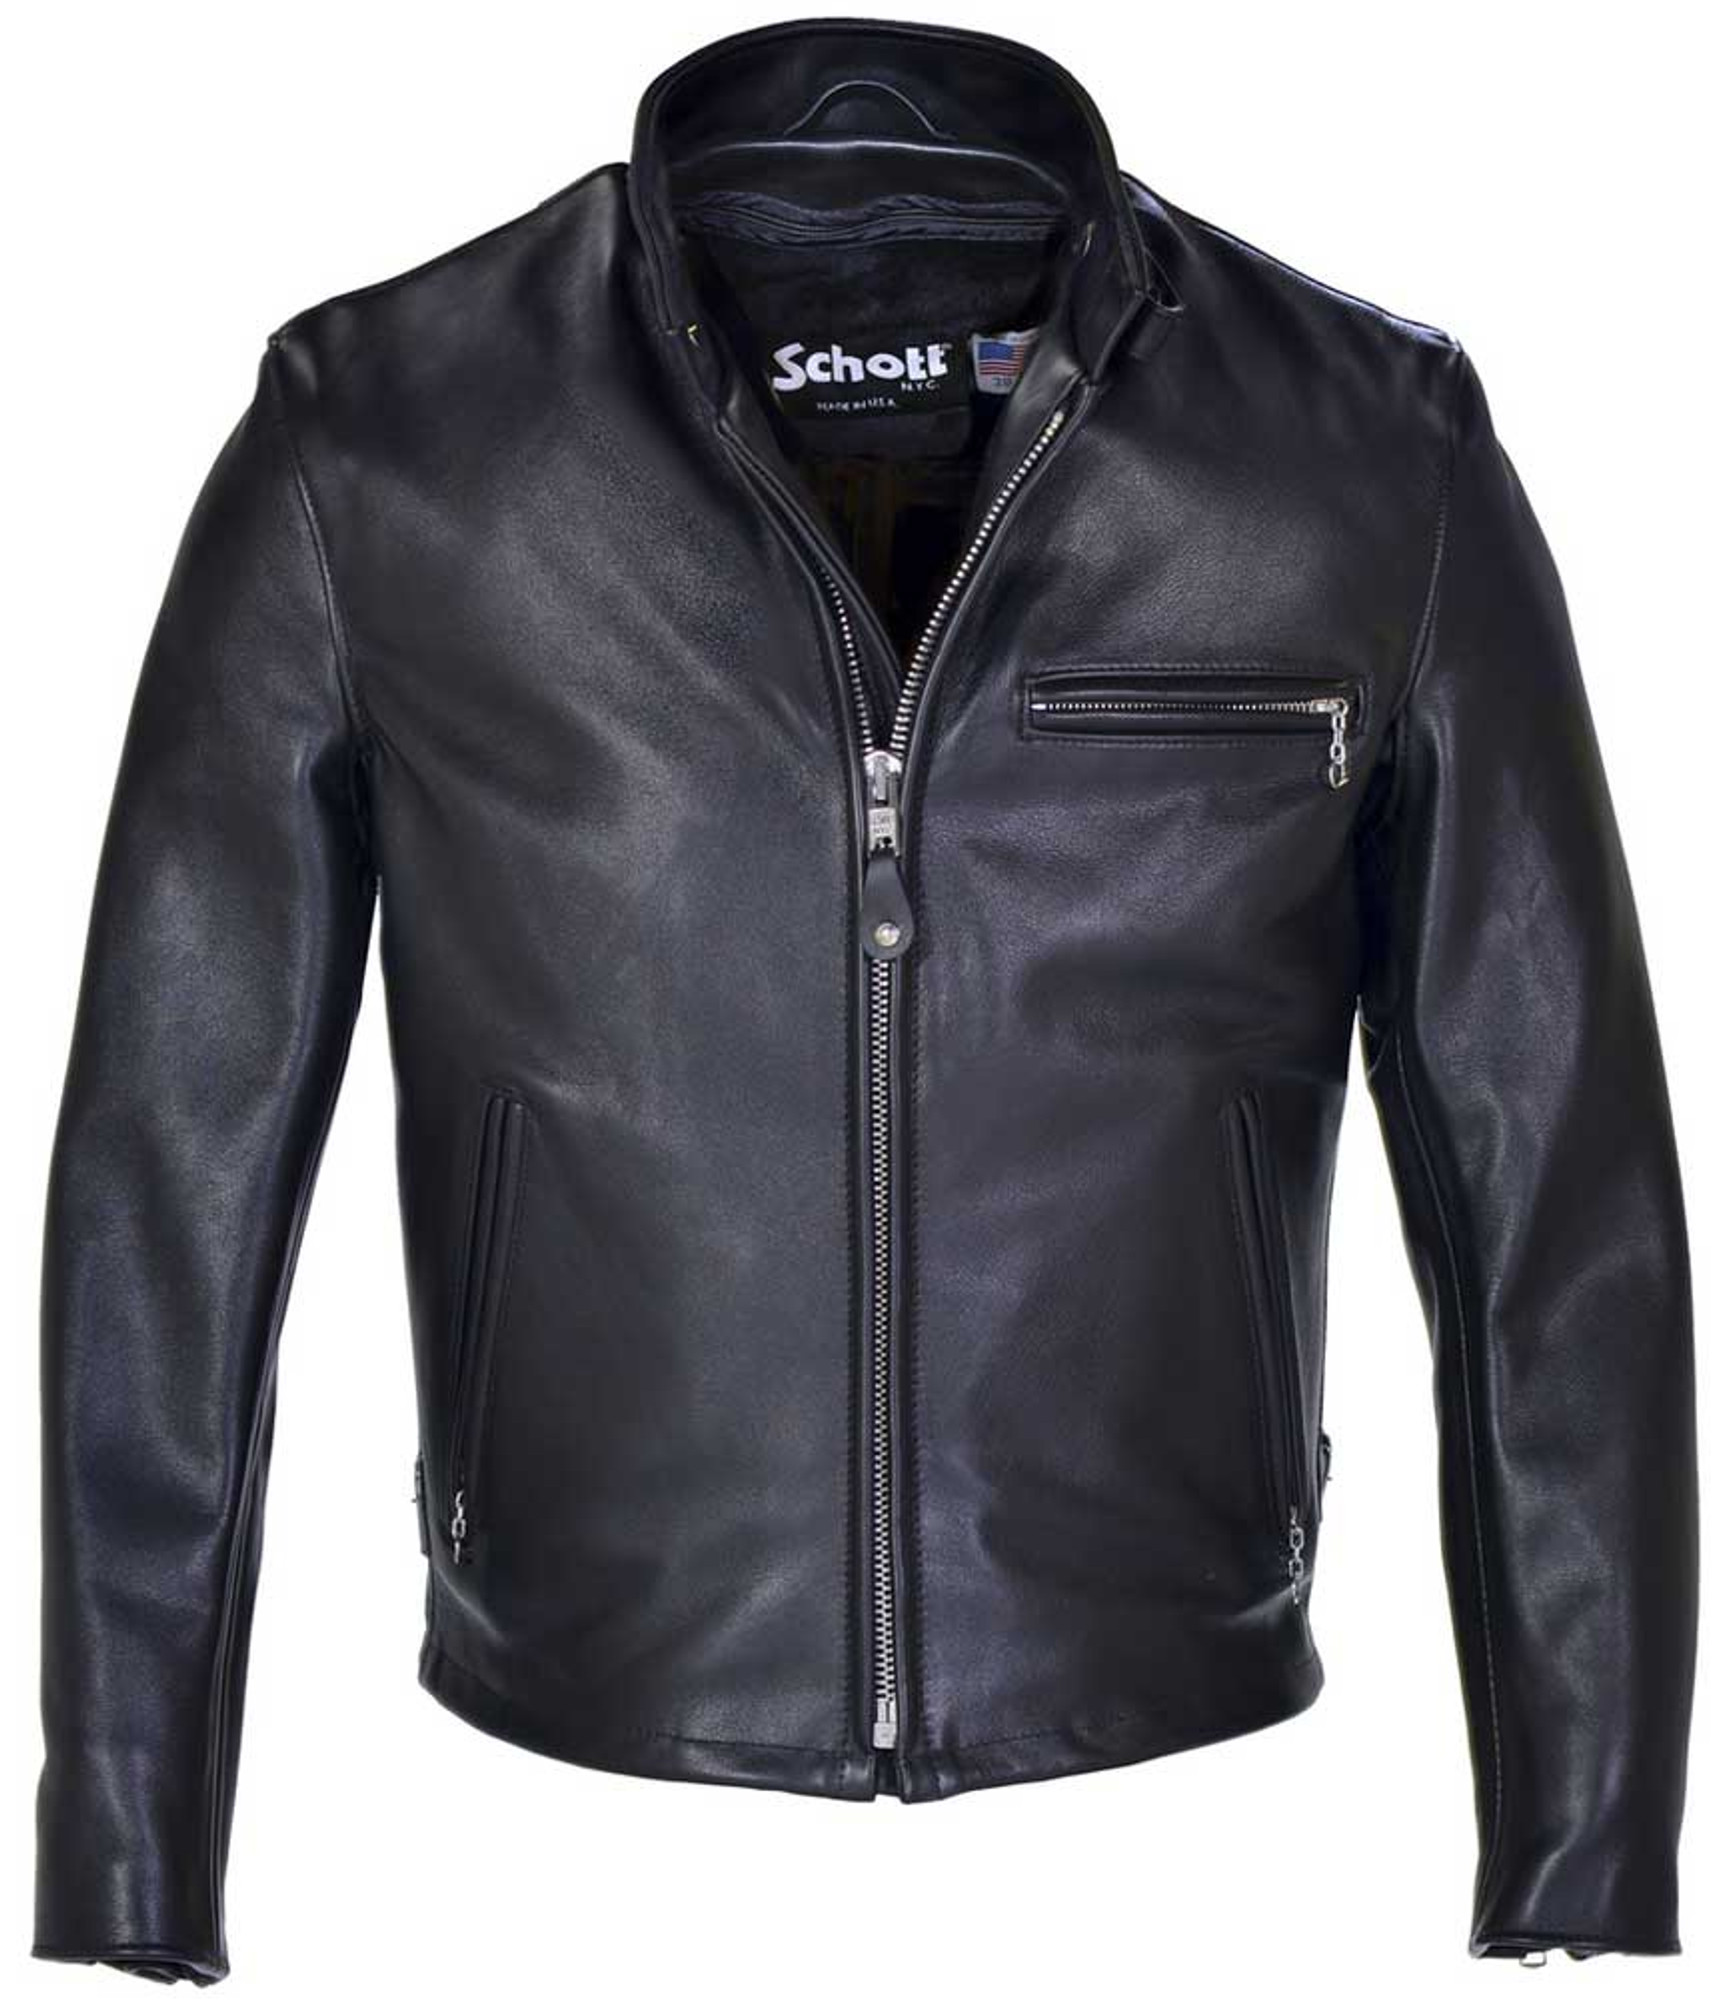 Jackets schott for men leather Leather Jackets